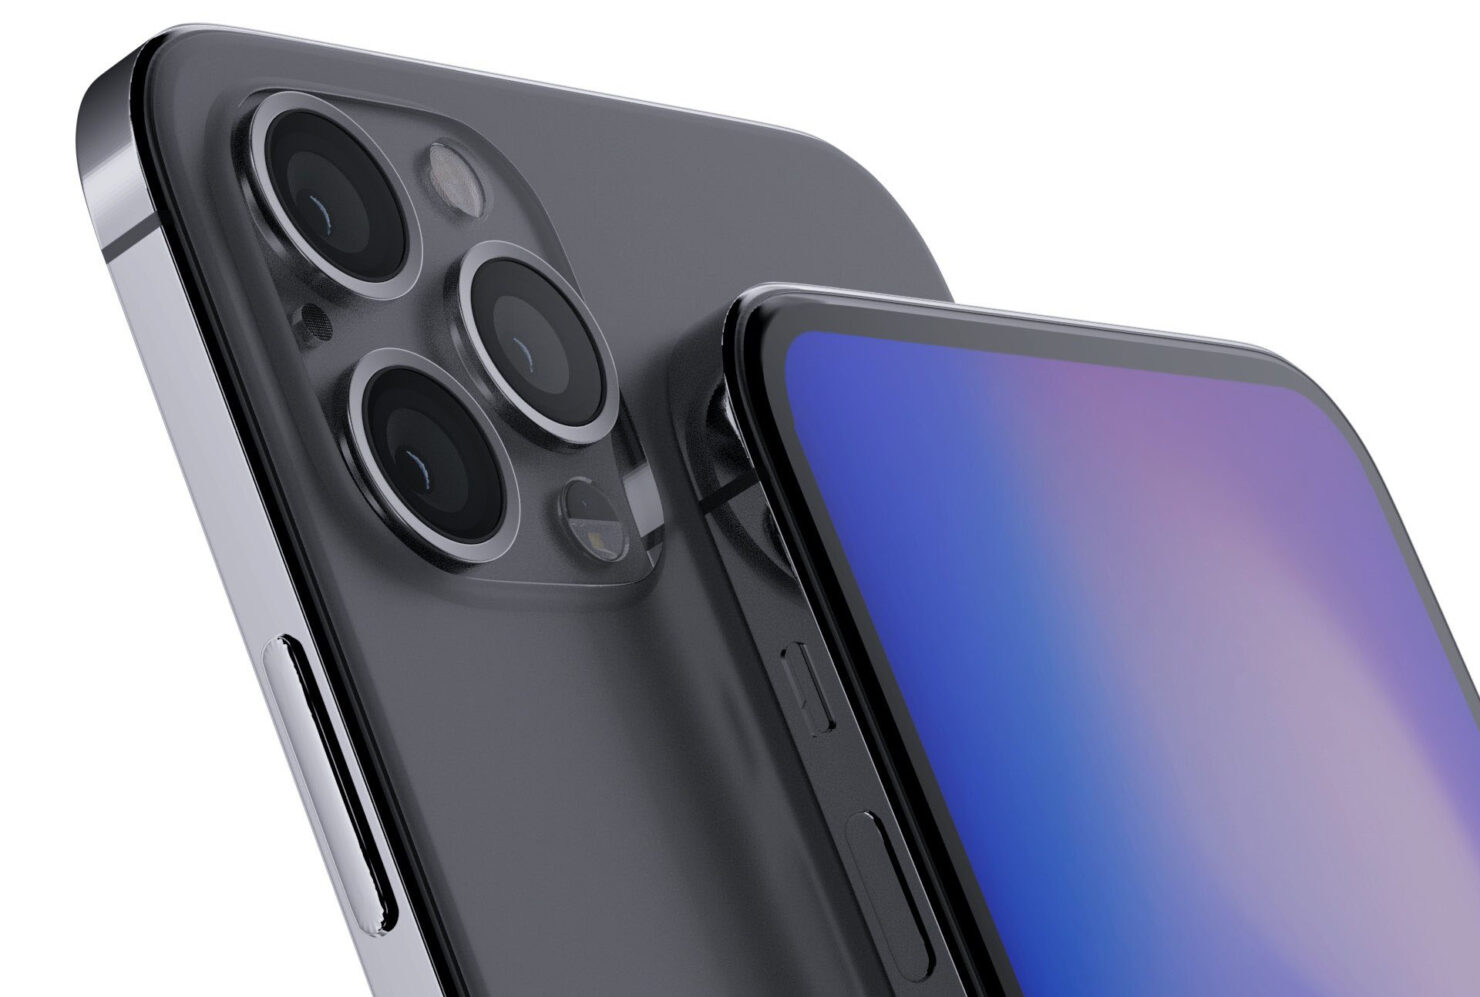 2023 iPhones Could Debut With in-Display Face ID and Periscope Camera System